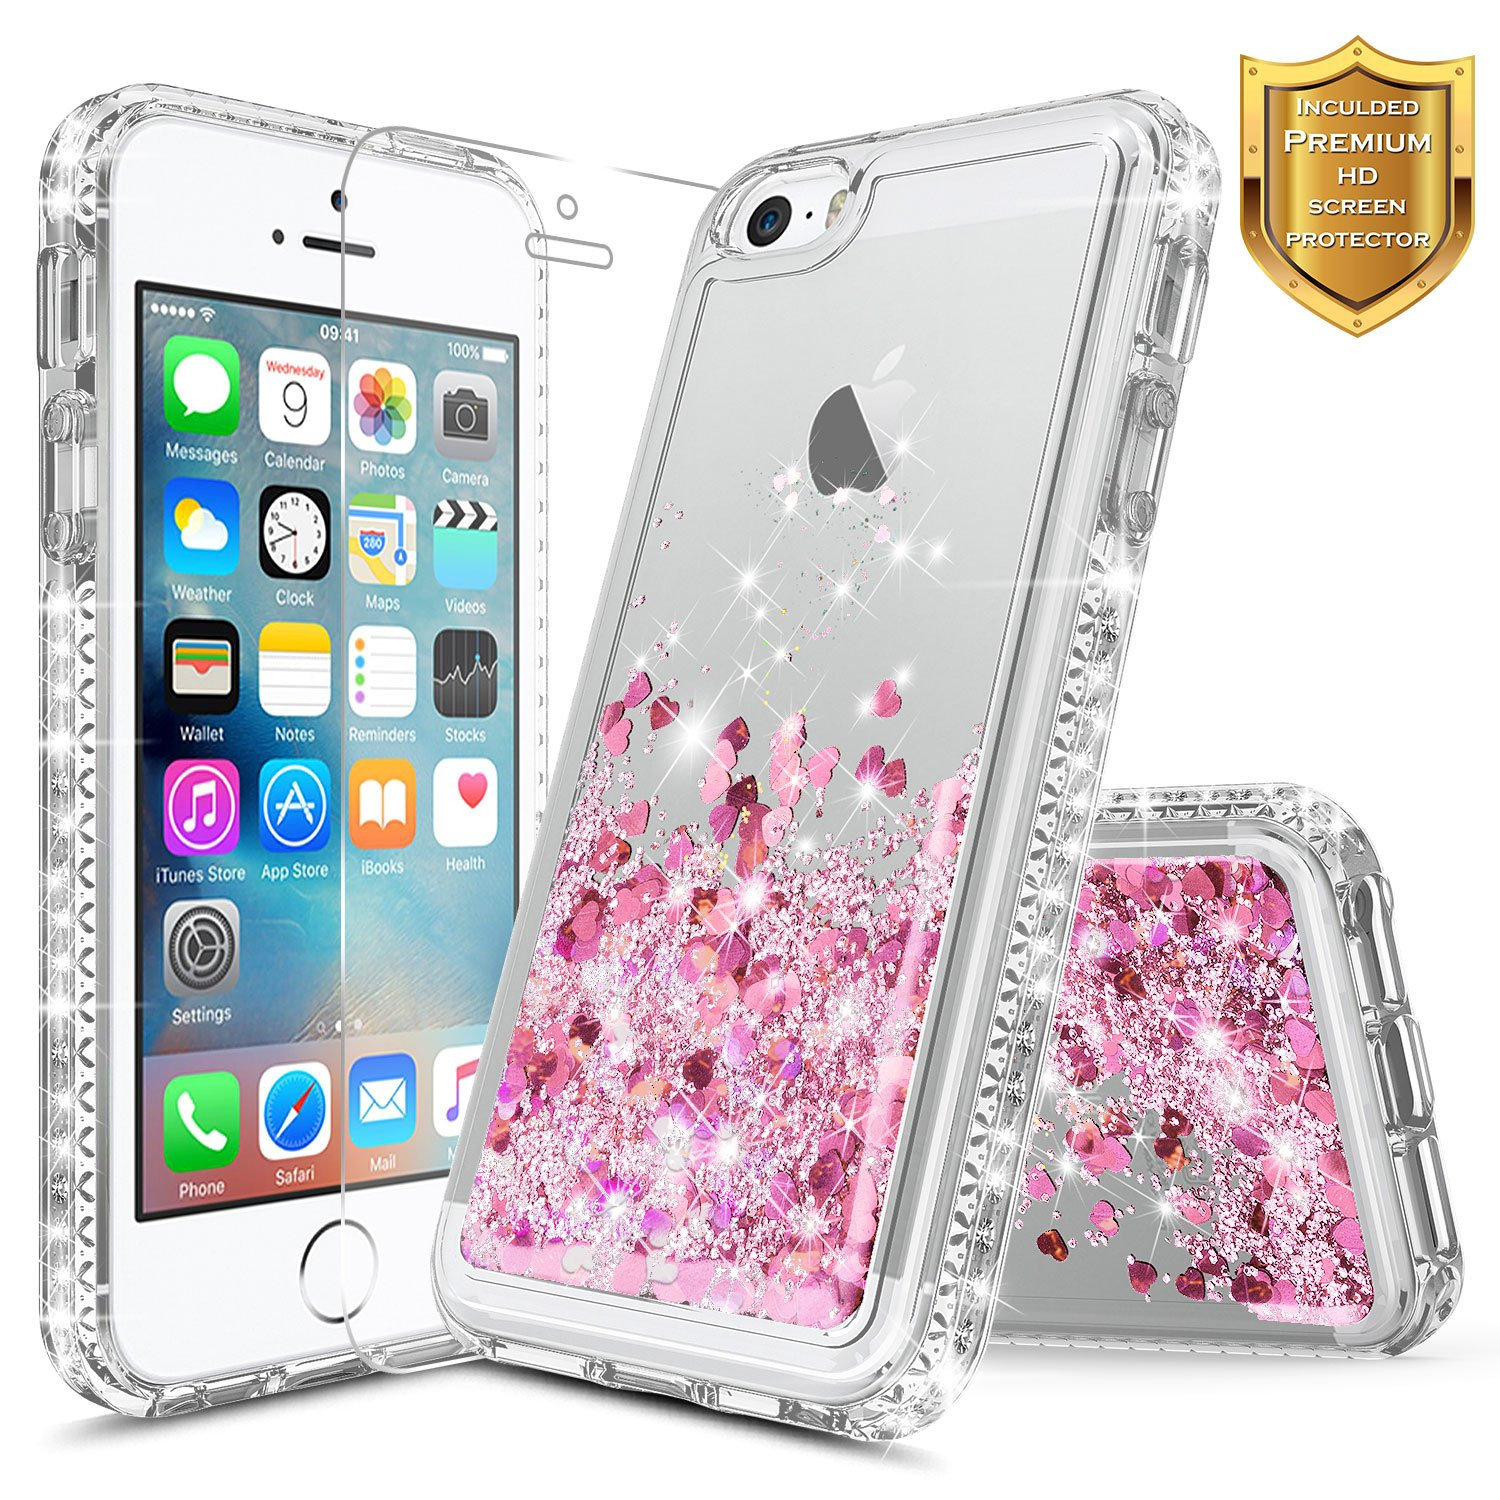 iPhone 5S Case, iPhone SE/iPhone 5 Case w/[Tempered Glass Screen Protector], NageBee Glitter Liquid Quicksand Waterfall Floating Flowing Sparkle Shiny Bling Diamond Girls Cute Case -Pink/Purple NGBIPHONE5DZLSFZ